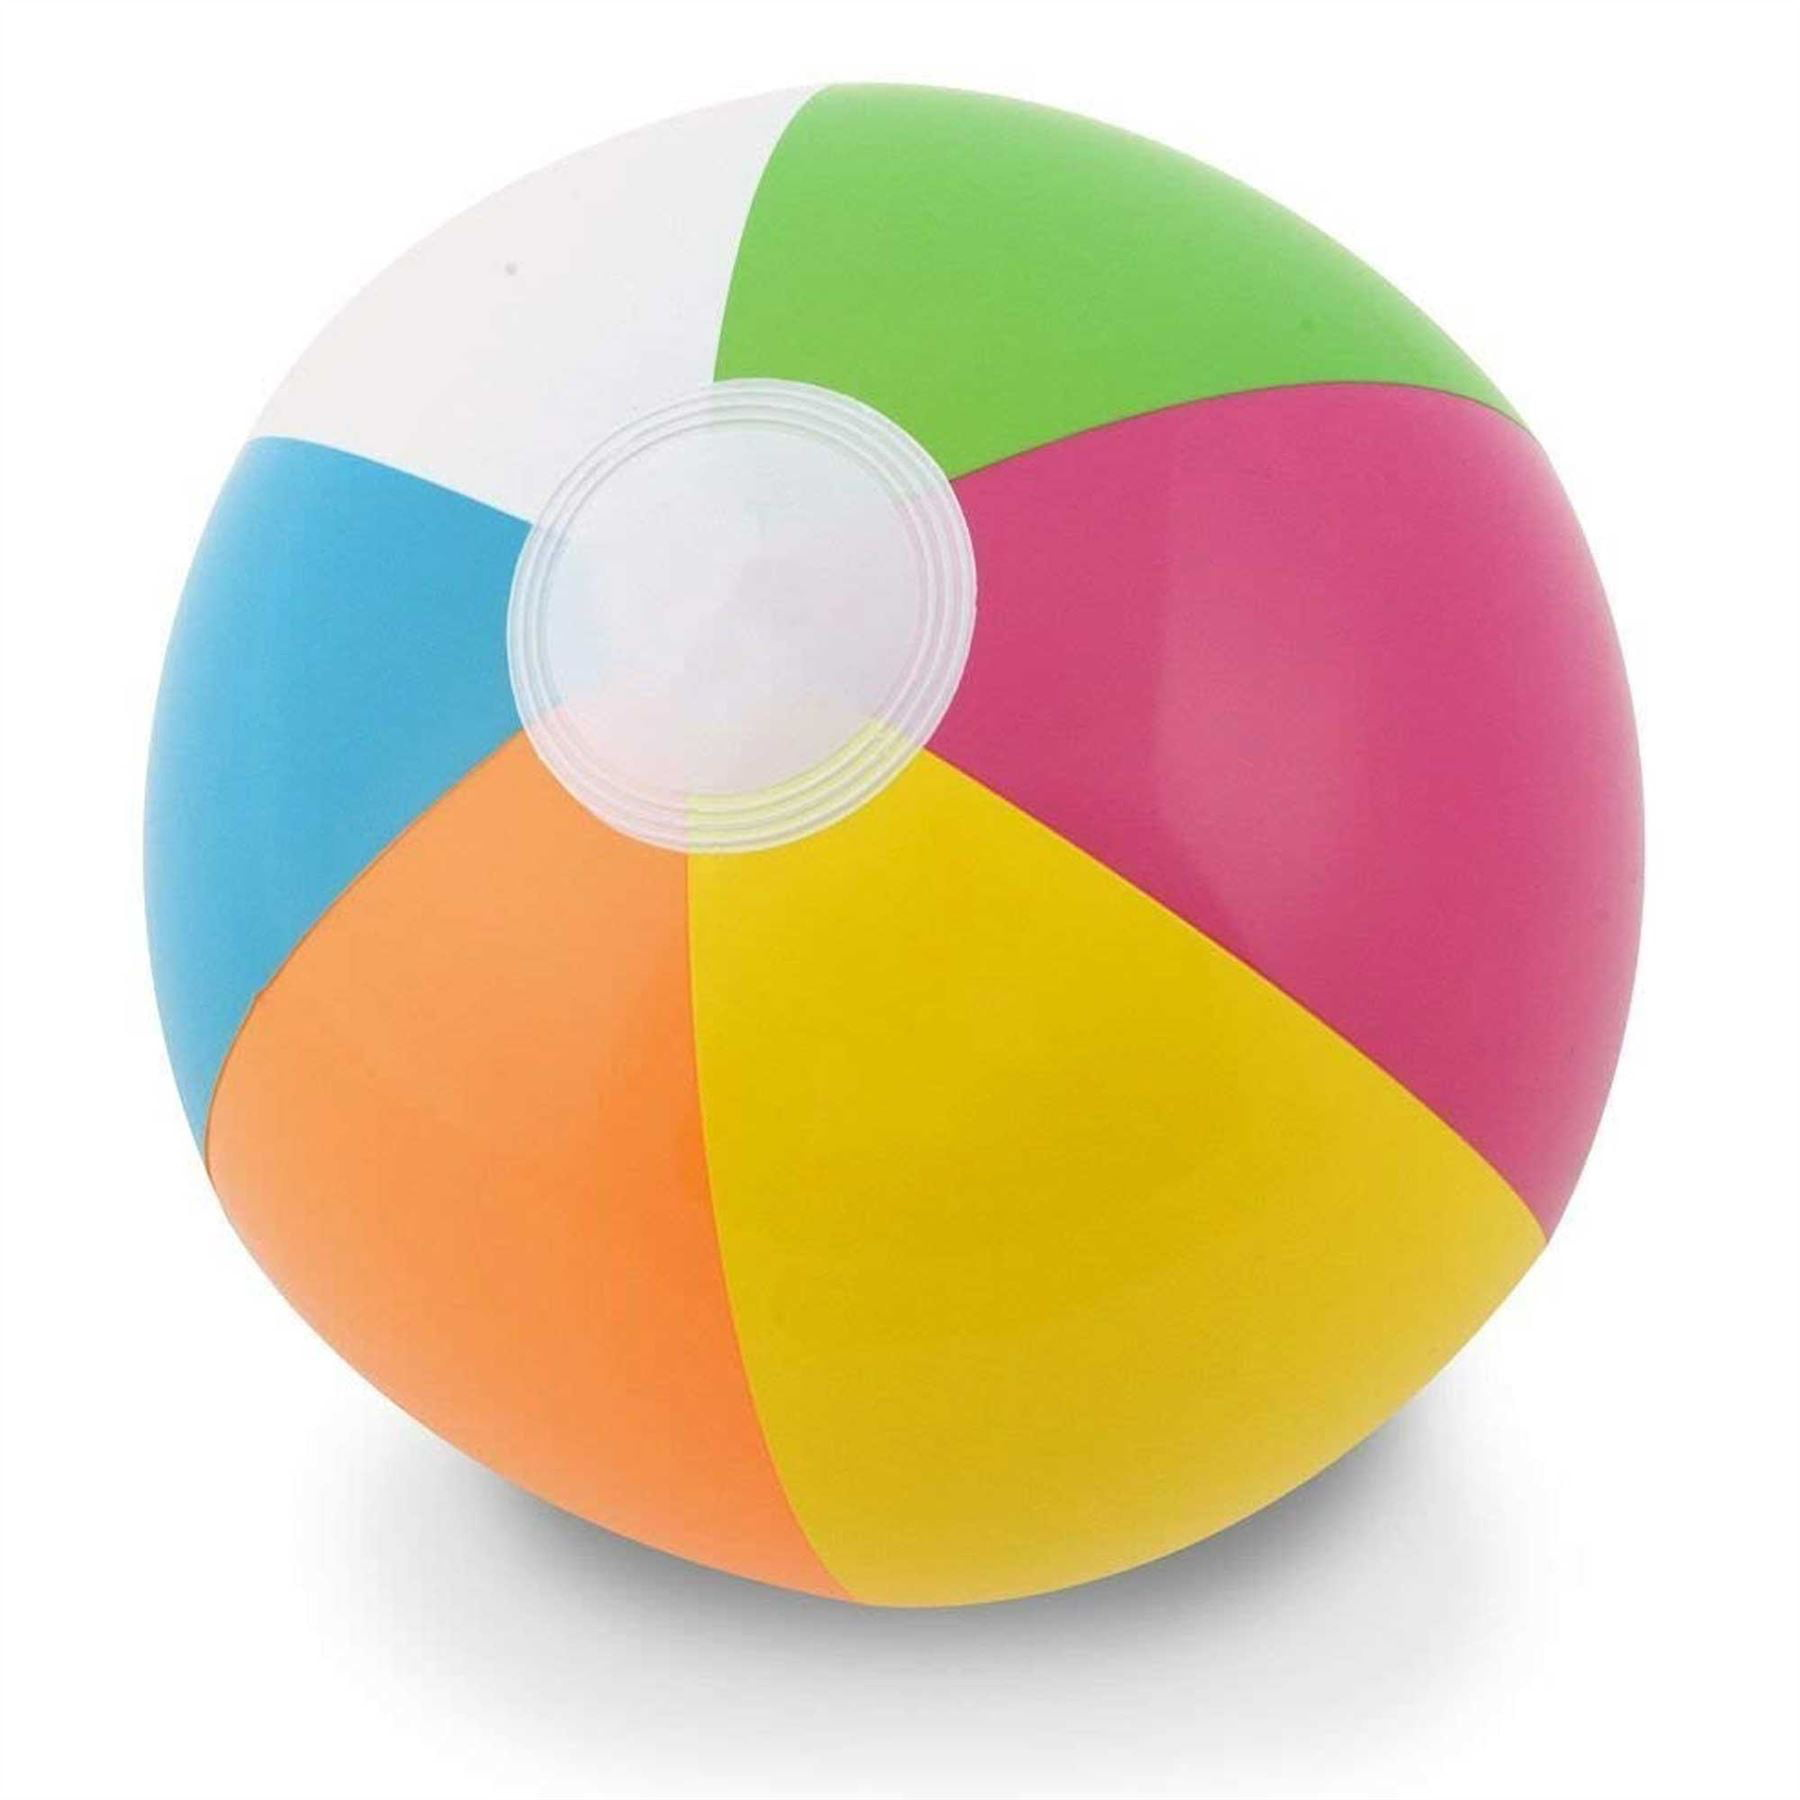 24in Beach Ball Inflatable Multi Coloured Holiday Swimming Pool Party Toy Blow Up Summer Game by